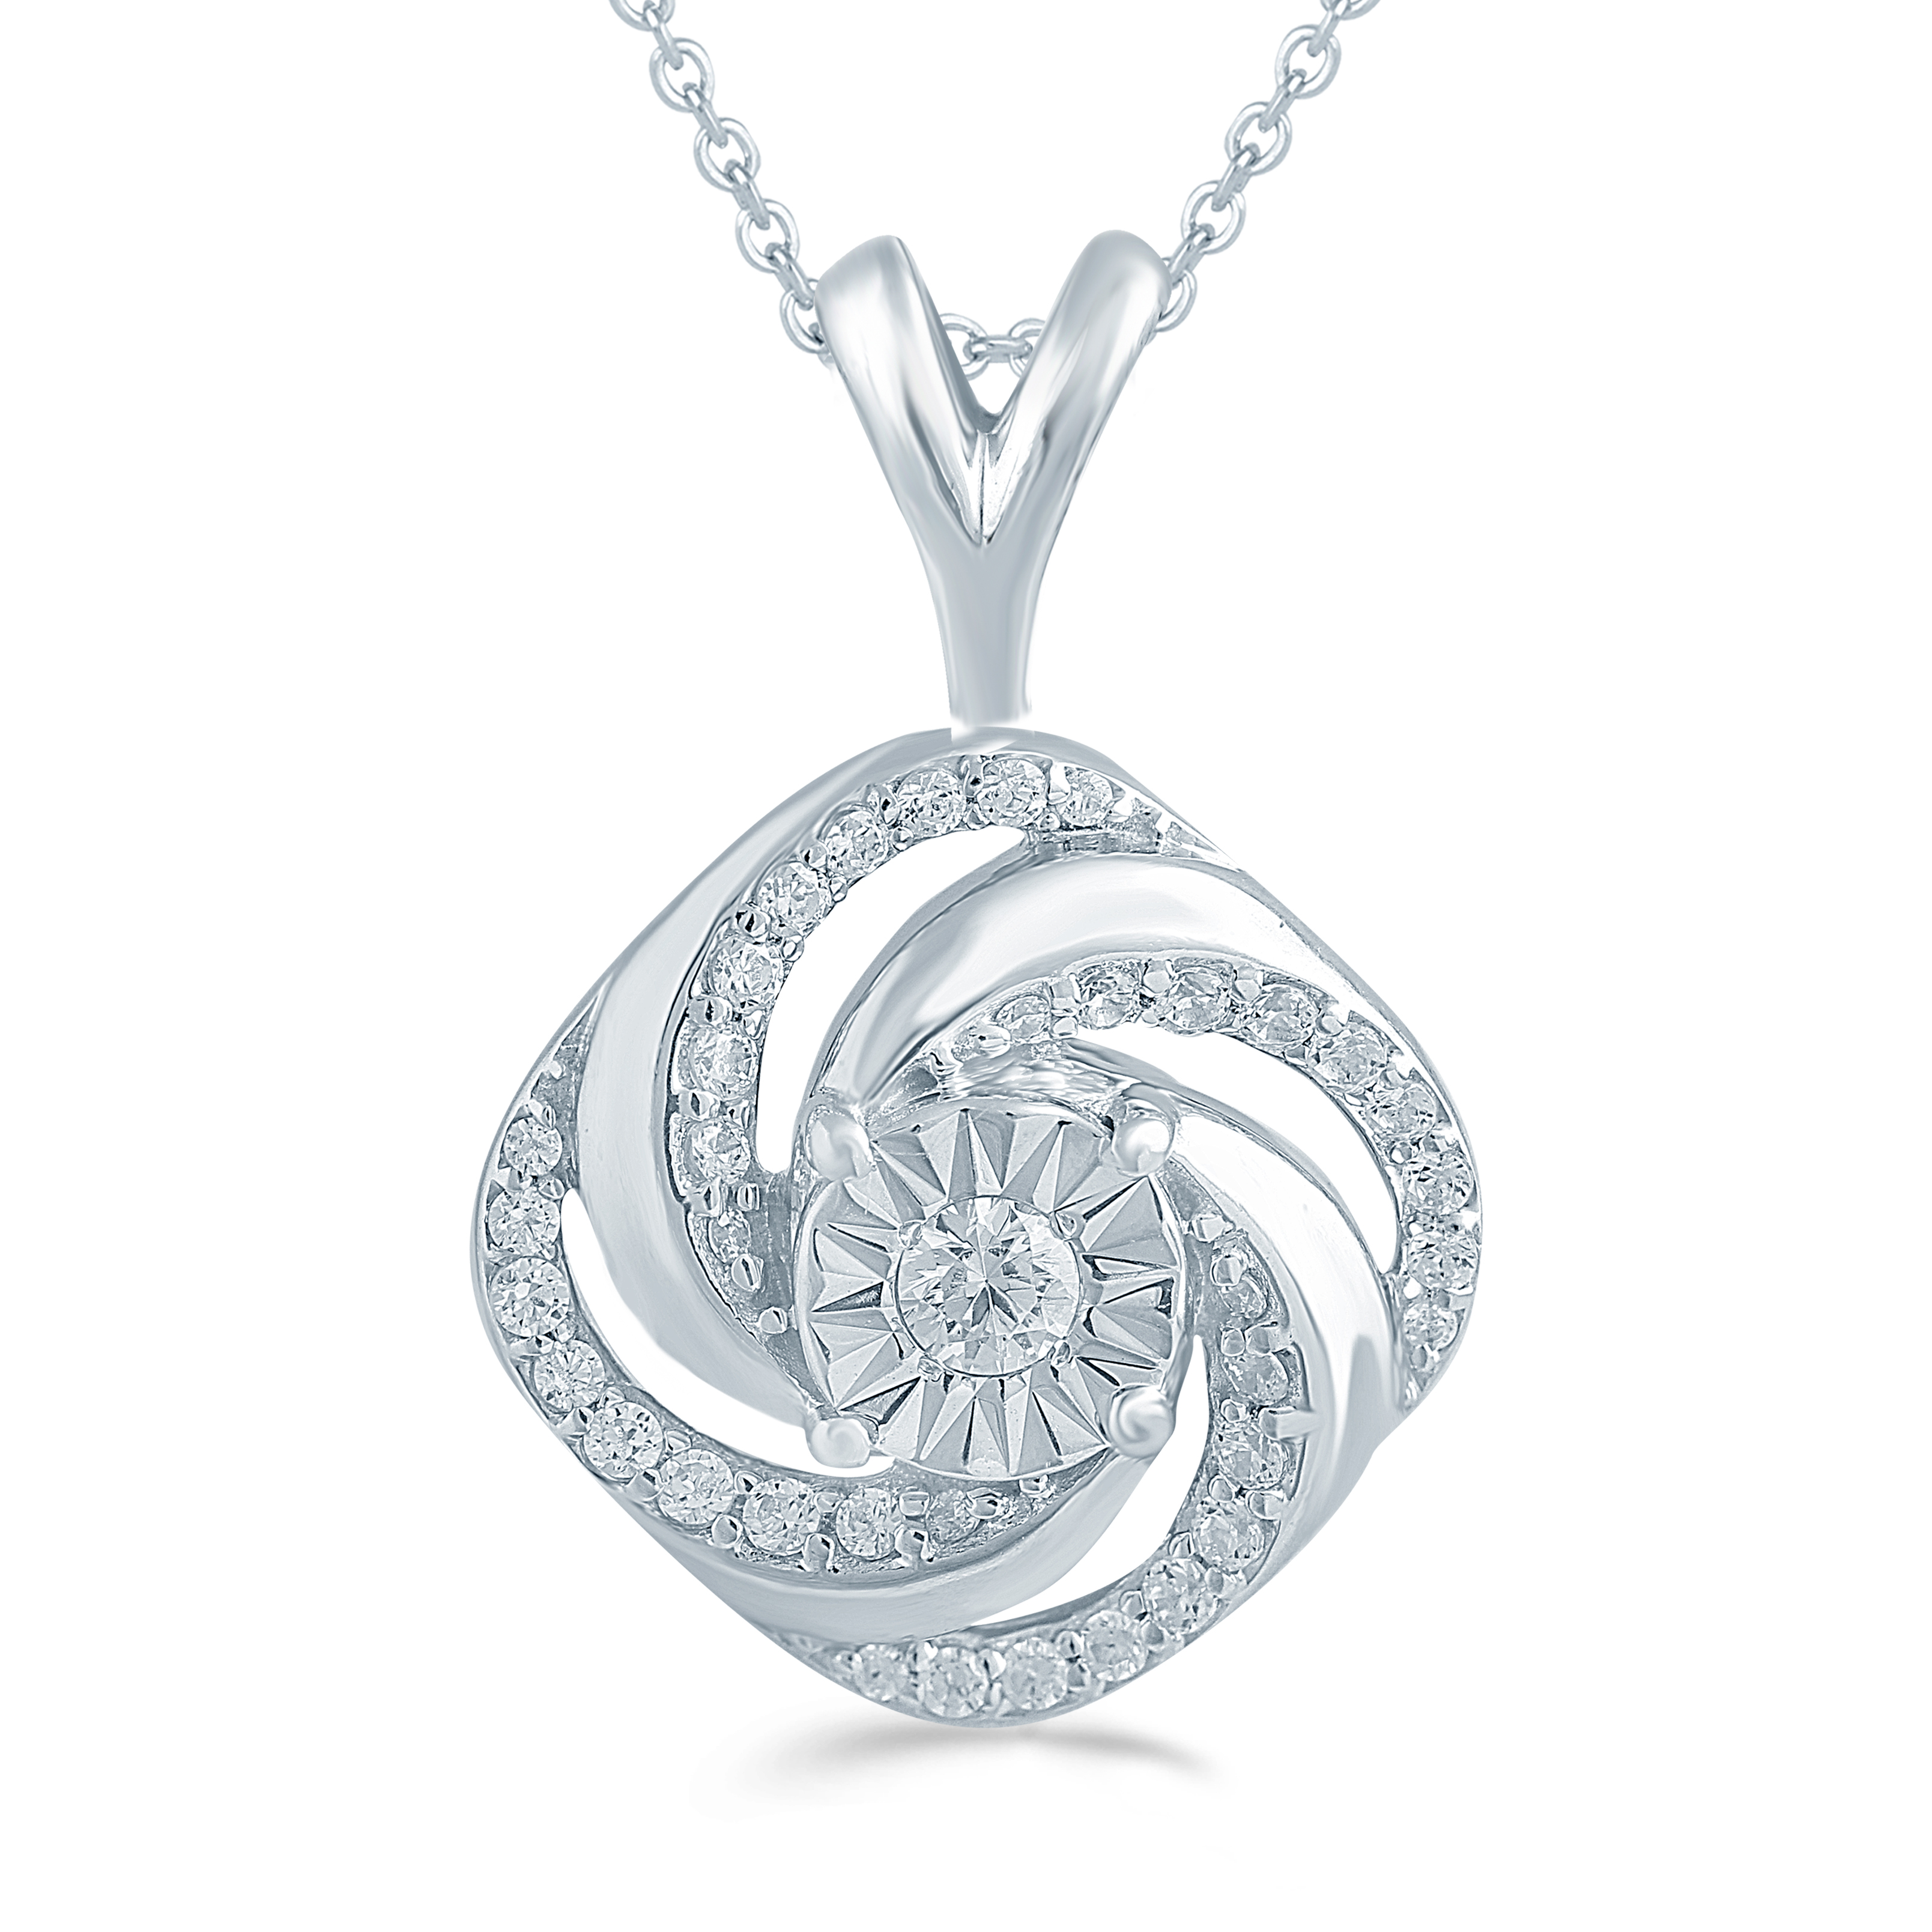 Fifth and Fine 1//4ct tw Diamond Swirl Cushion Cluster Fashion Pendant in Sterling Silver with 18 Cable Chain